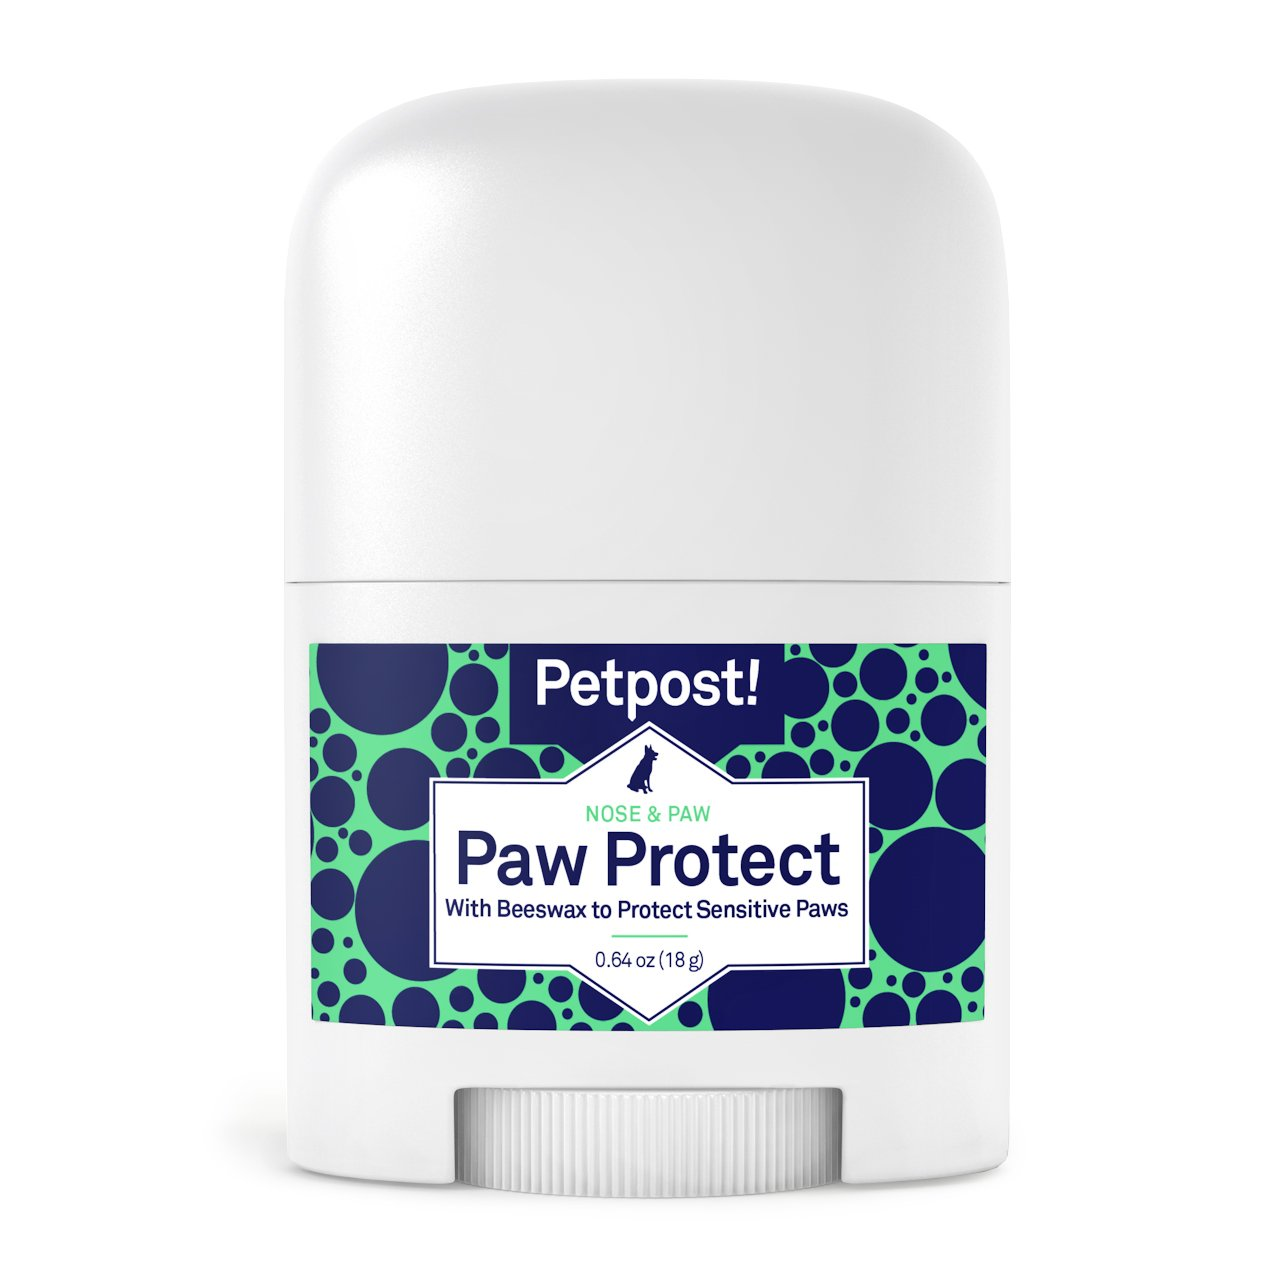 Petpost   Paw Protection for Dogs - Organic Sunflower Oil and Beeswax Balm for Hot Pavement - Wax Coats Dog Feet to Prevent Burns from Heat & Cold